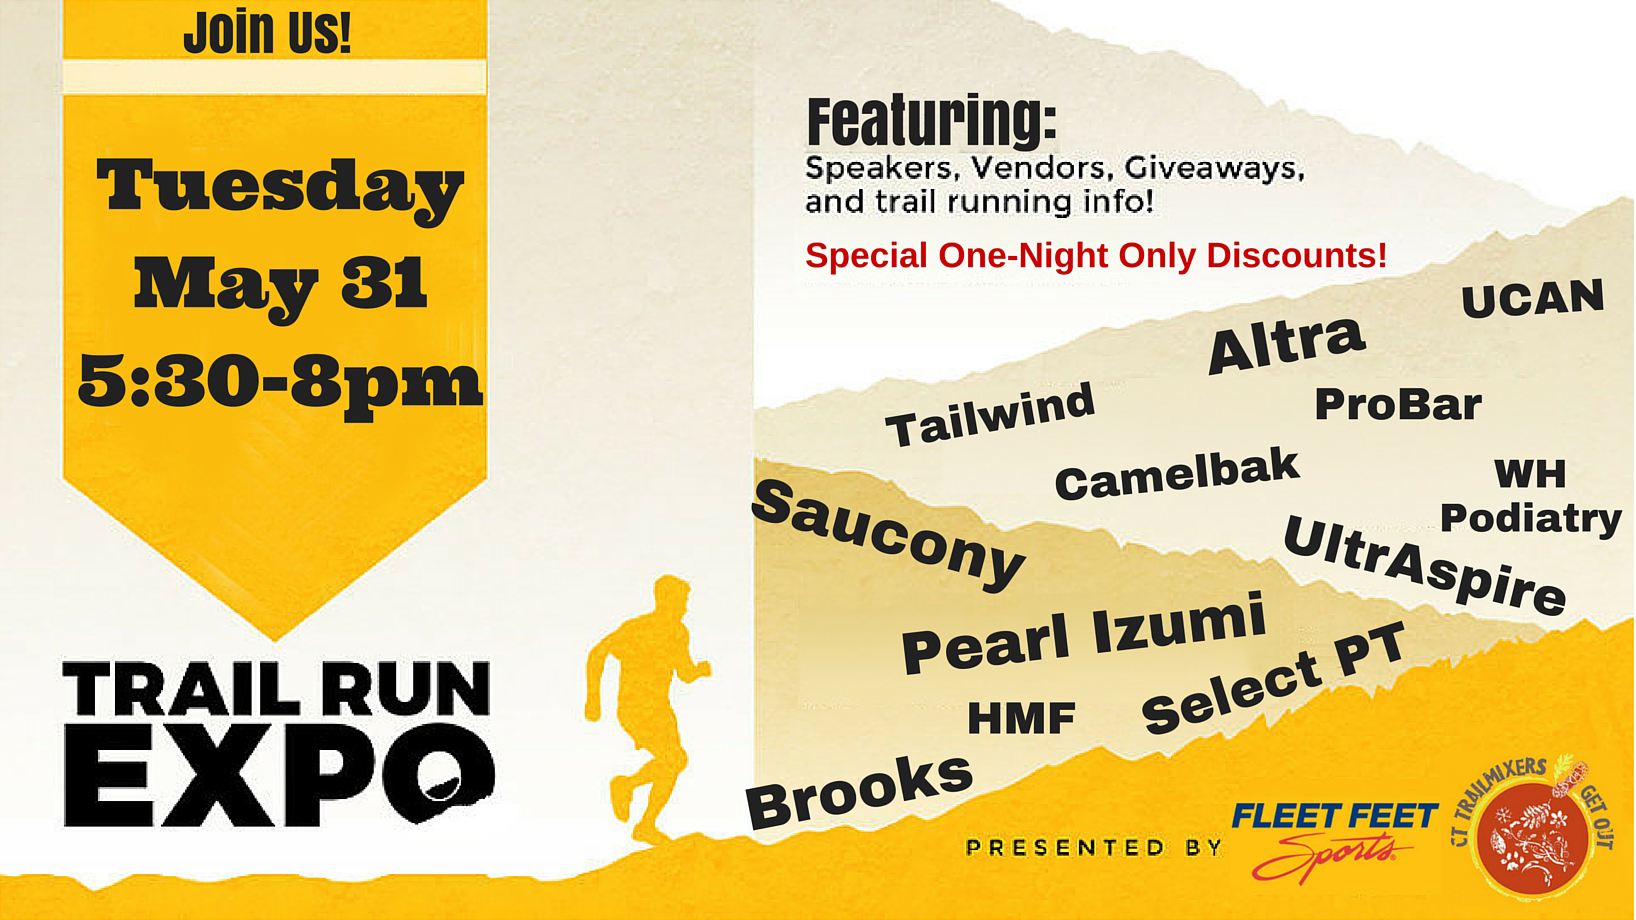 Trail Running Expo